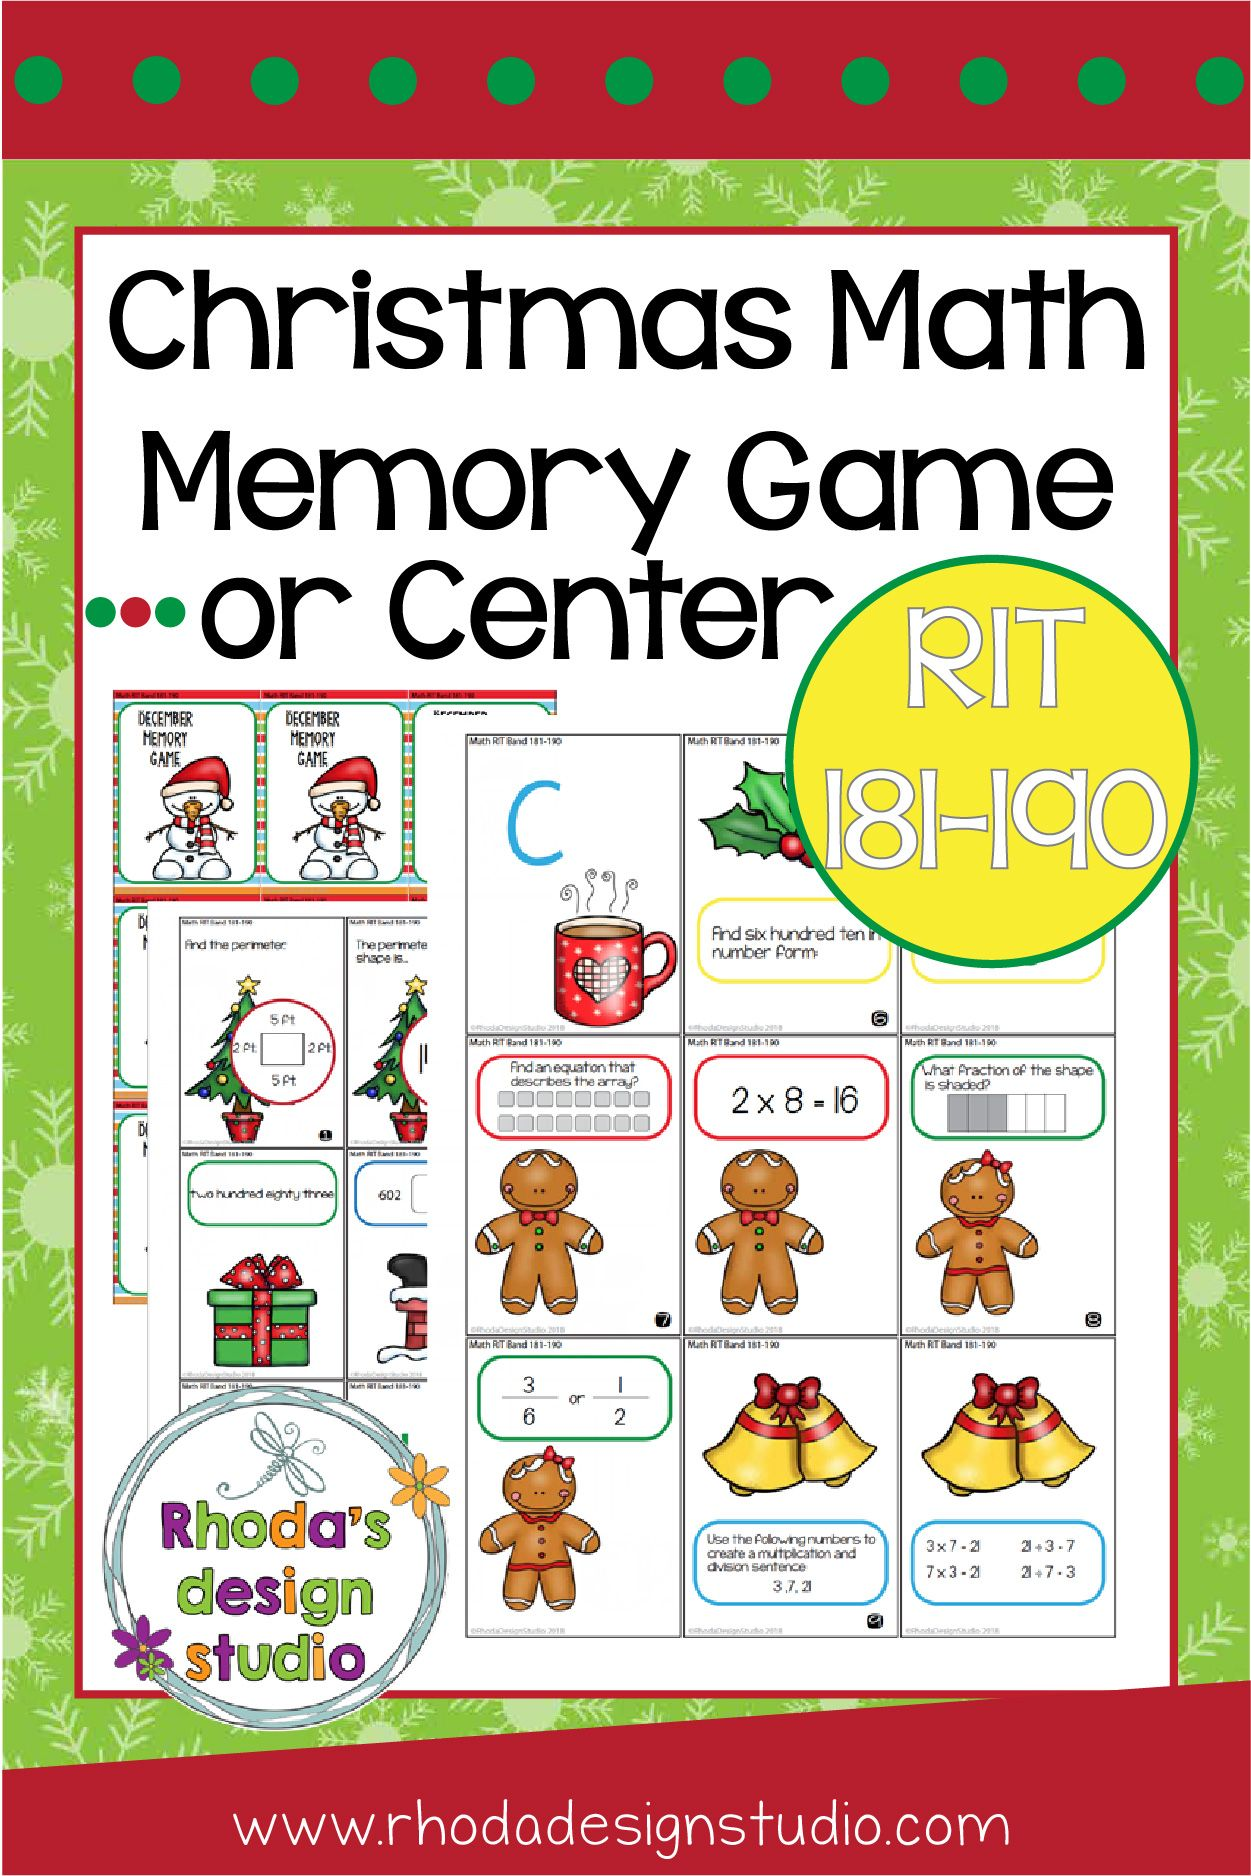 Christmas Games Math Rit 181 190 Memory Game And Worksheet